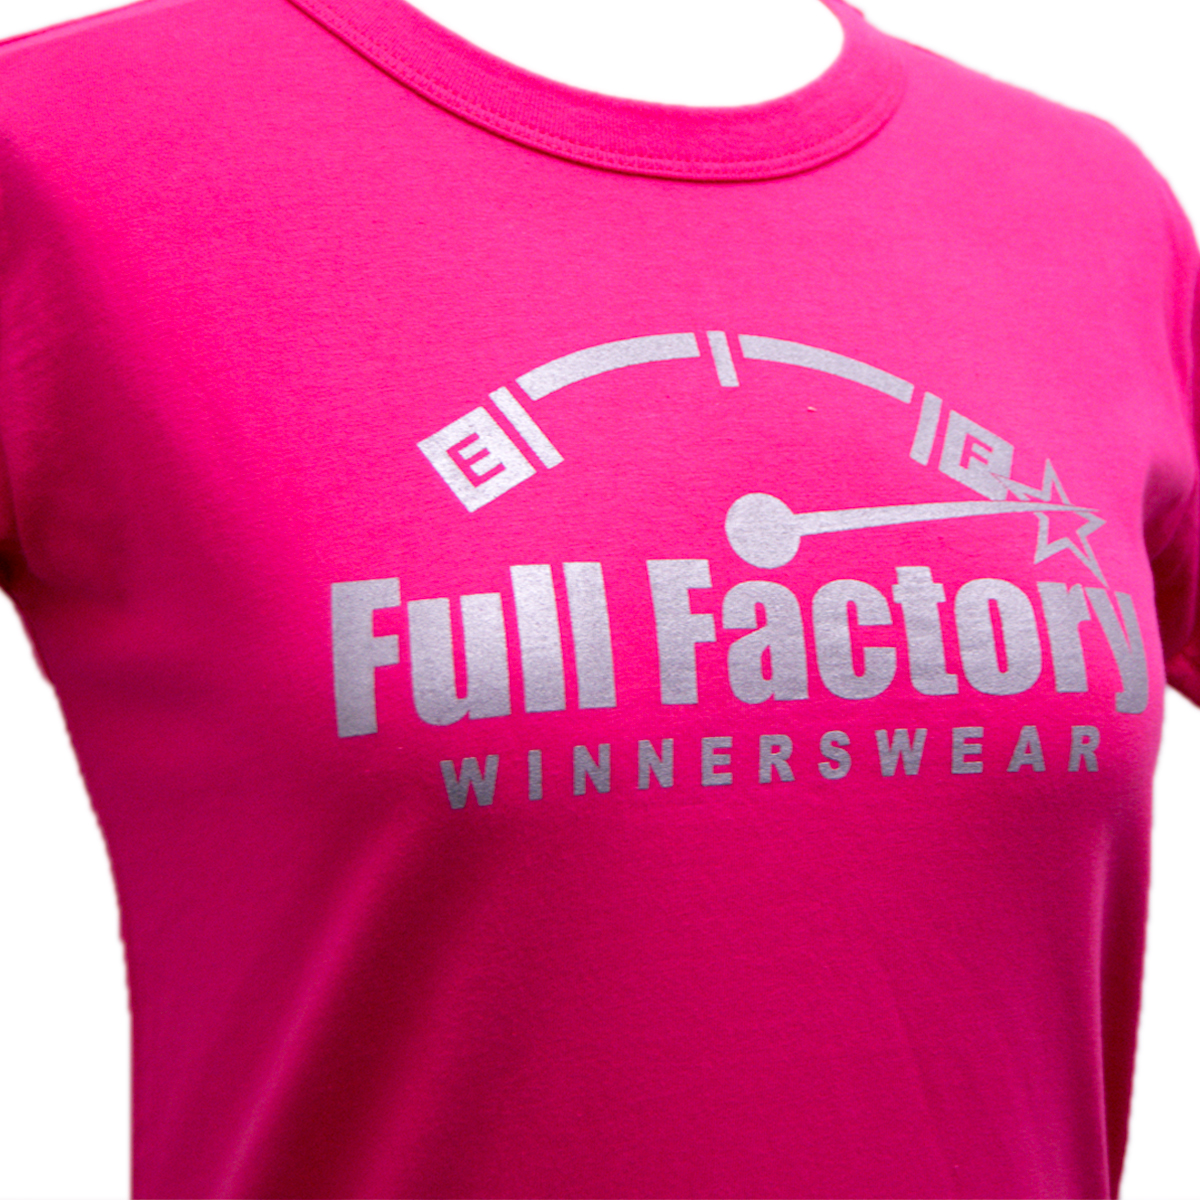 Ladies Full Factory Pink & Silver T-Shirt Image